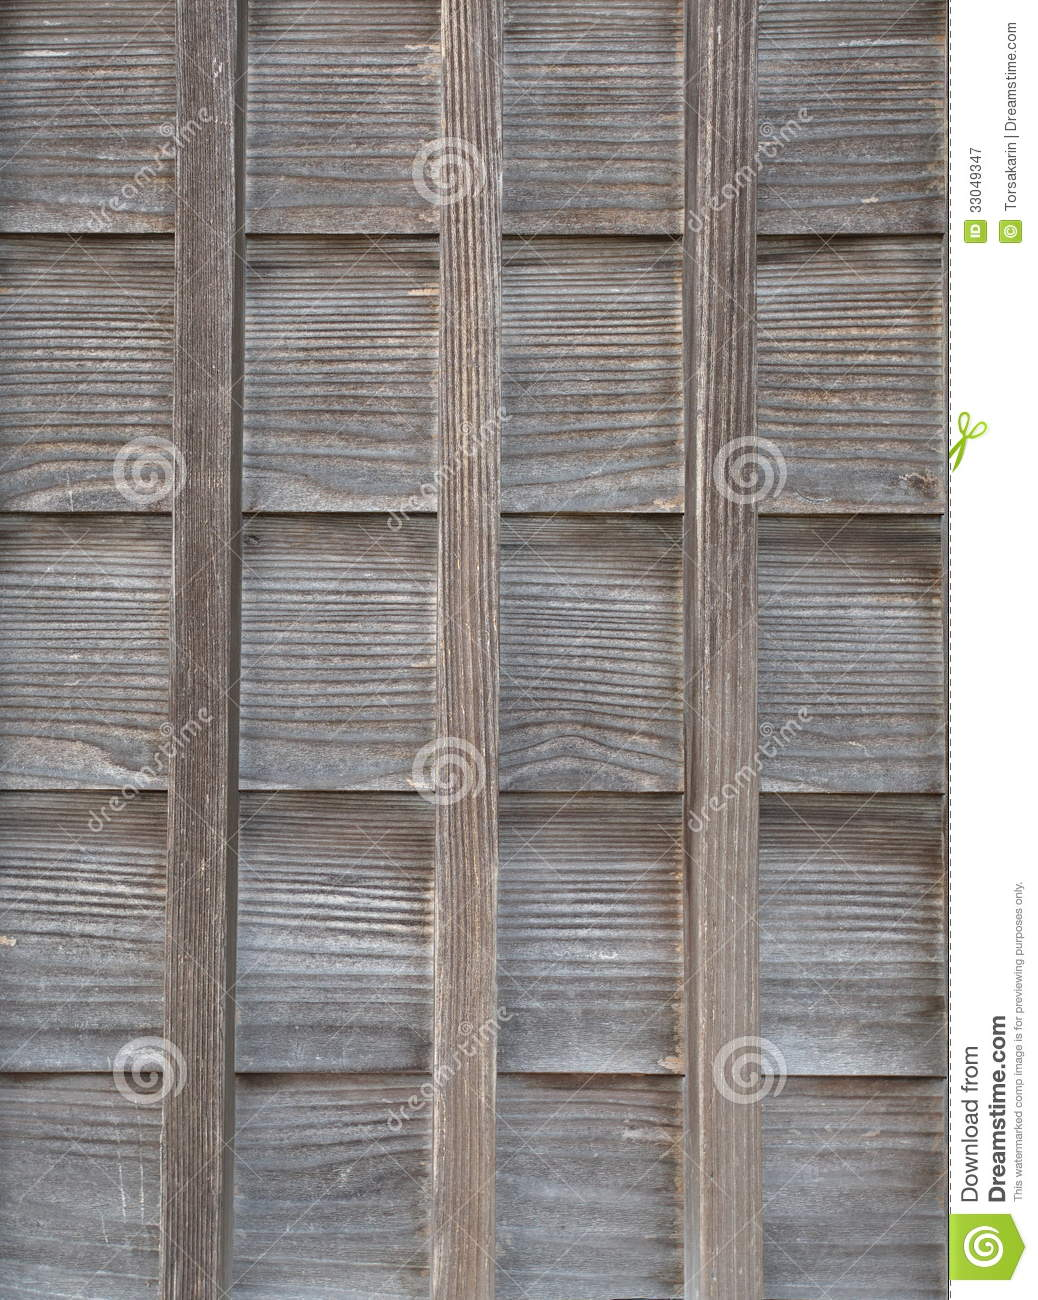 Wall Of Old Japanese House Stock Image